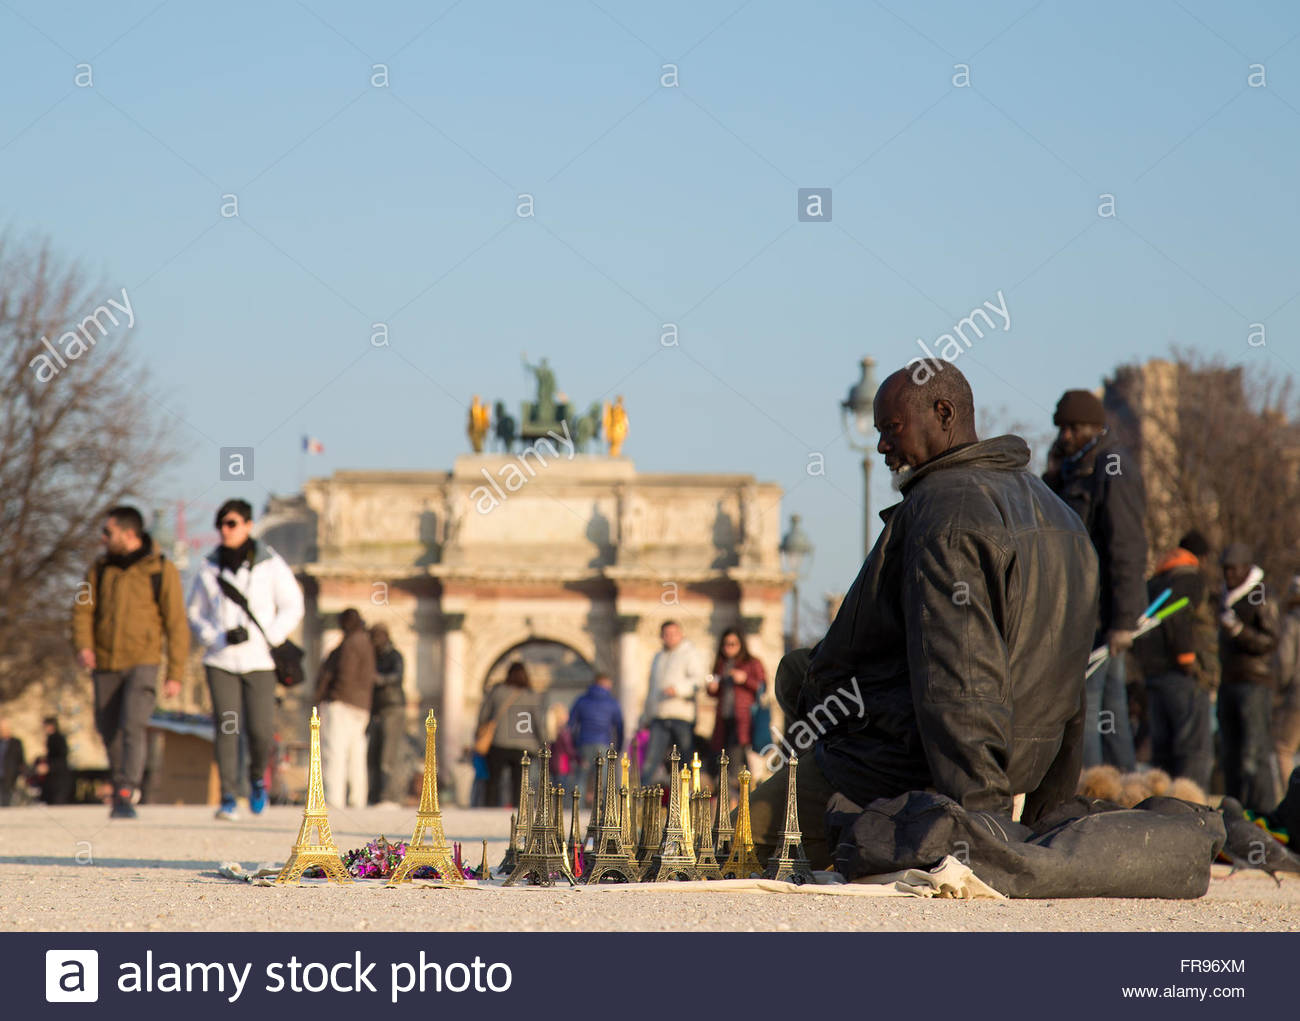 african migrant selling souvenirs in the jardin des tuileries in paris FR96XM